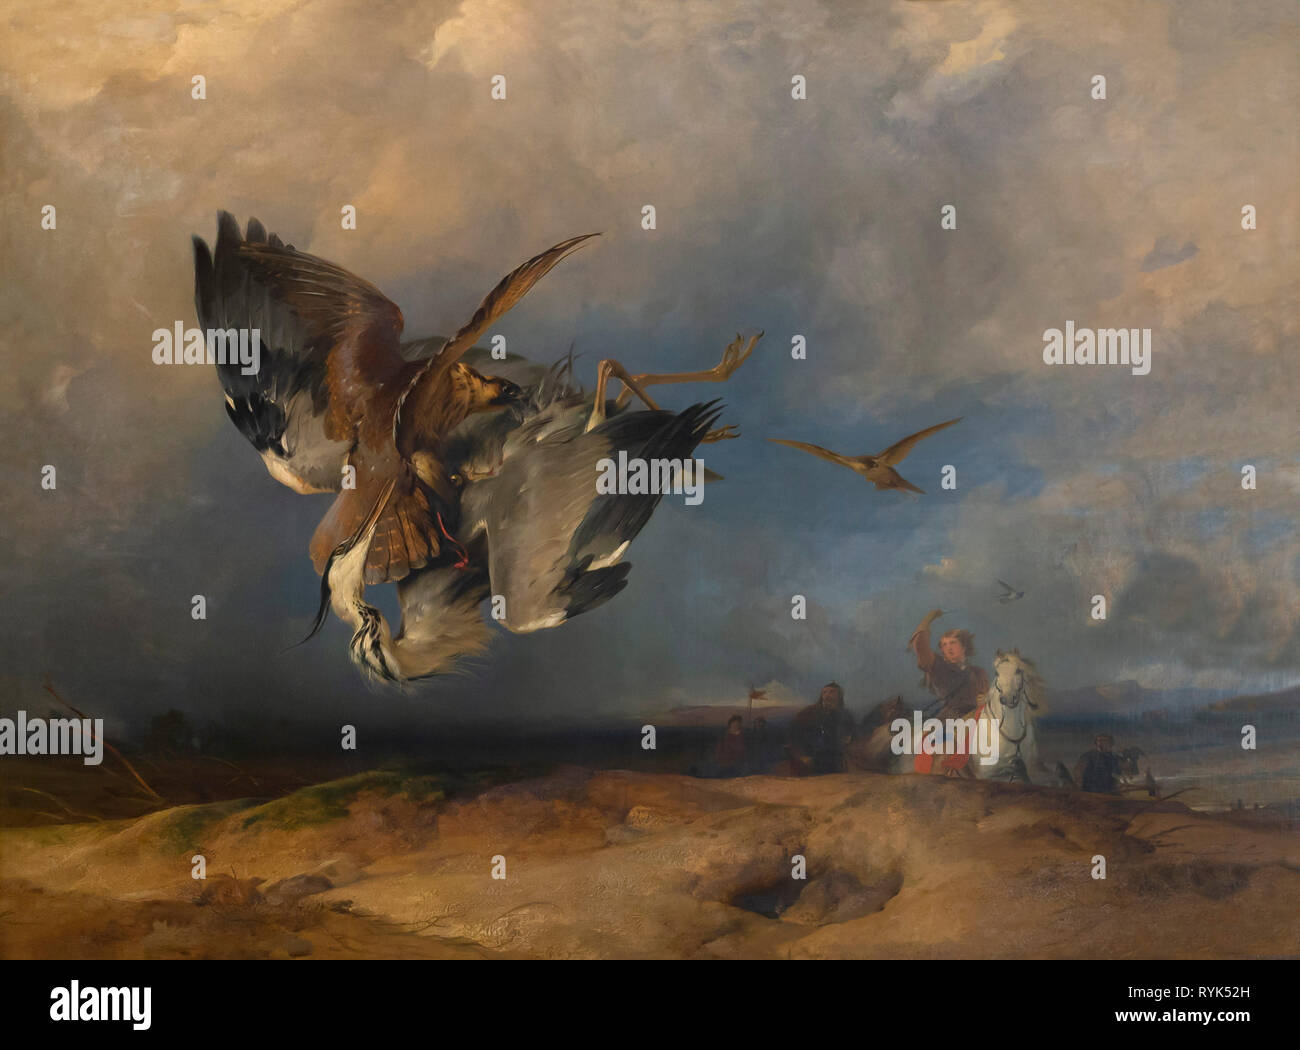 Hawking in the Olden Times, Sir Edward Landseer, 1832, - Stock Image